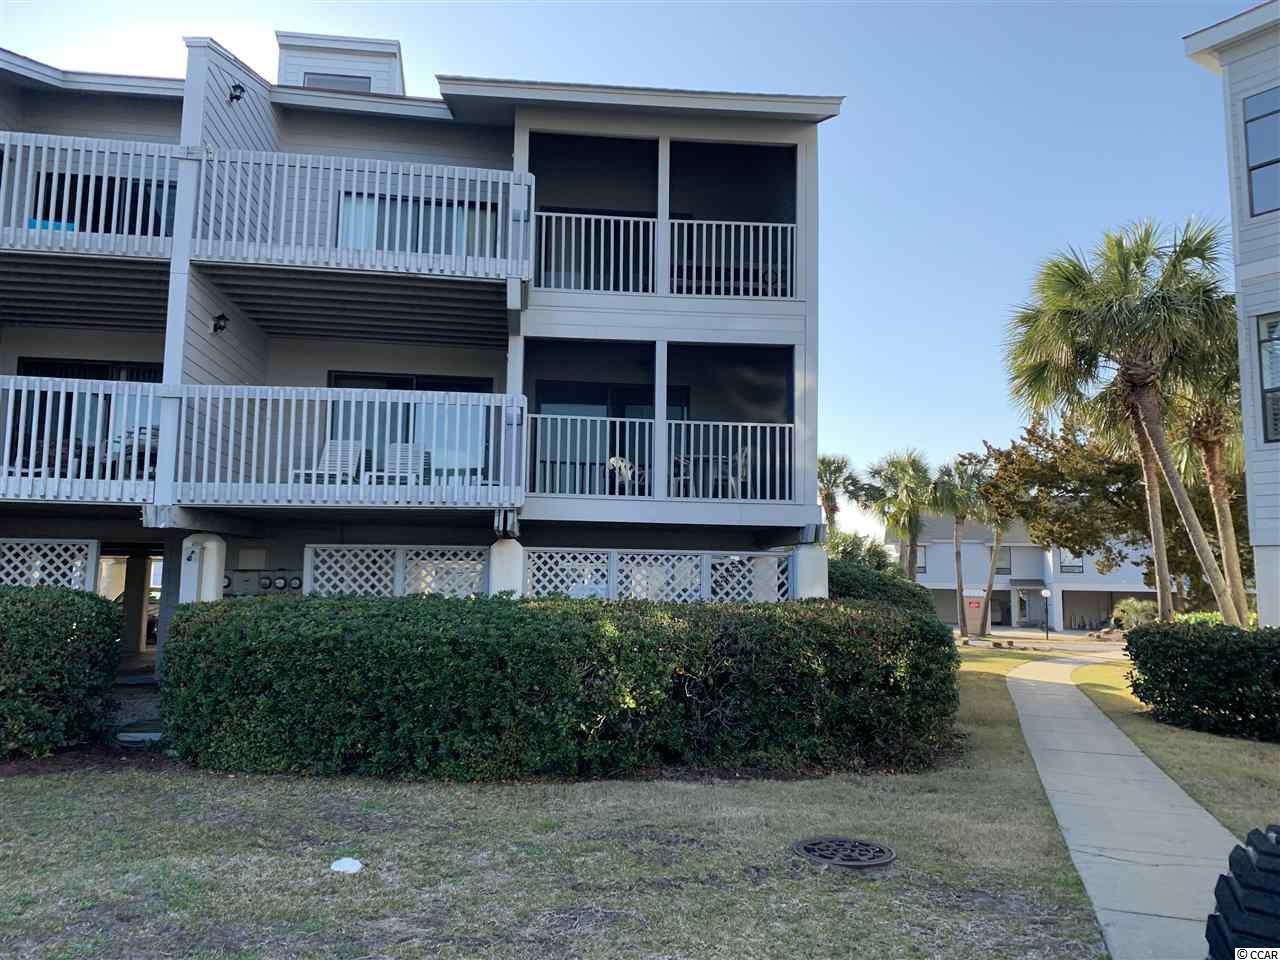 This beautiful 2 bedroom, 2 bath villa is located in the gated community of Inlet Point at South Litchfield Beach. The condo sits on the second floor of the 18 Building over looking the pool. The living area features and open floor plan with the living area flowing to ocean side screened porch and sun deck. The large master bedroom suite and guest bedroom are located at the rear of the unit each with their own private bath. The amenities of Inlet Point include 2 pools, dock on the creek and private beach access to one of the prettiest beaches in S.C is just flip flops away!.